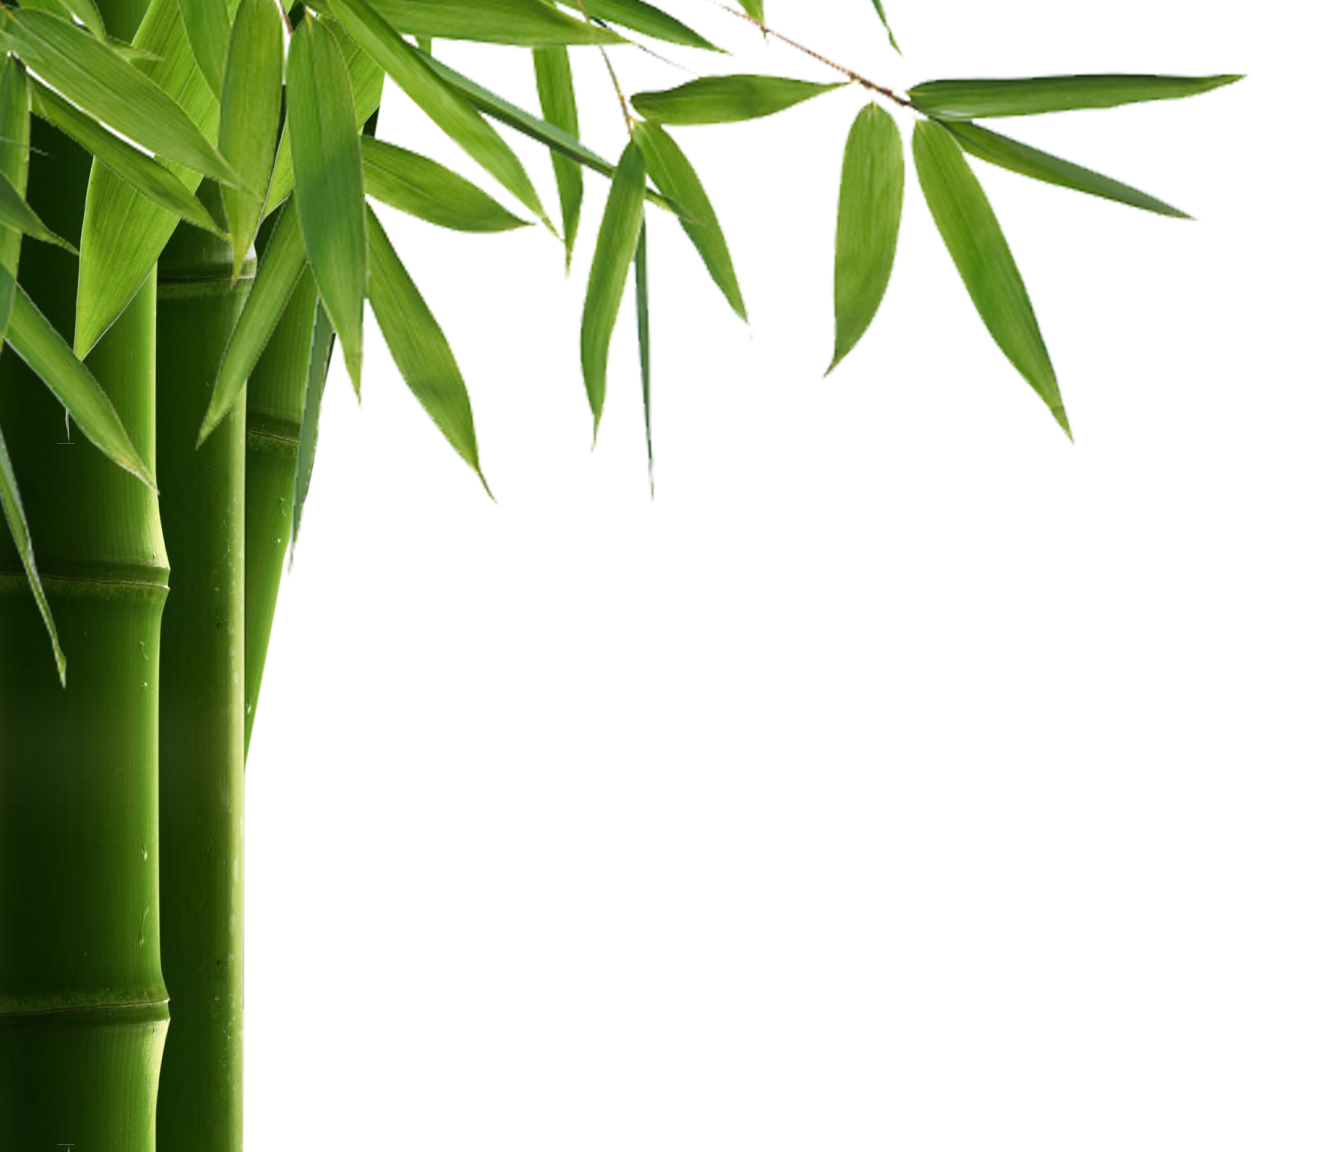 Download For Free Bamboo Png In High Resolution image #40473